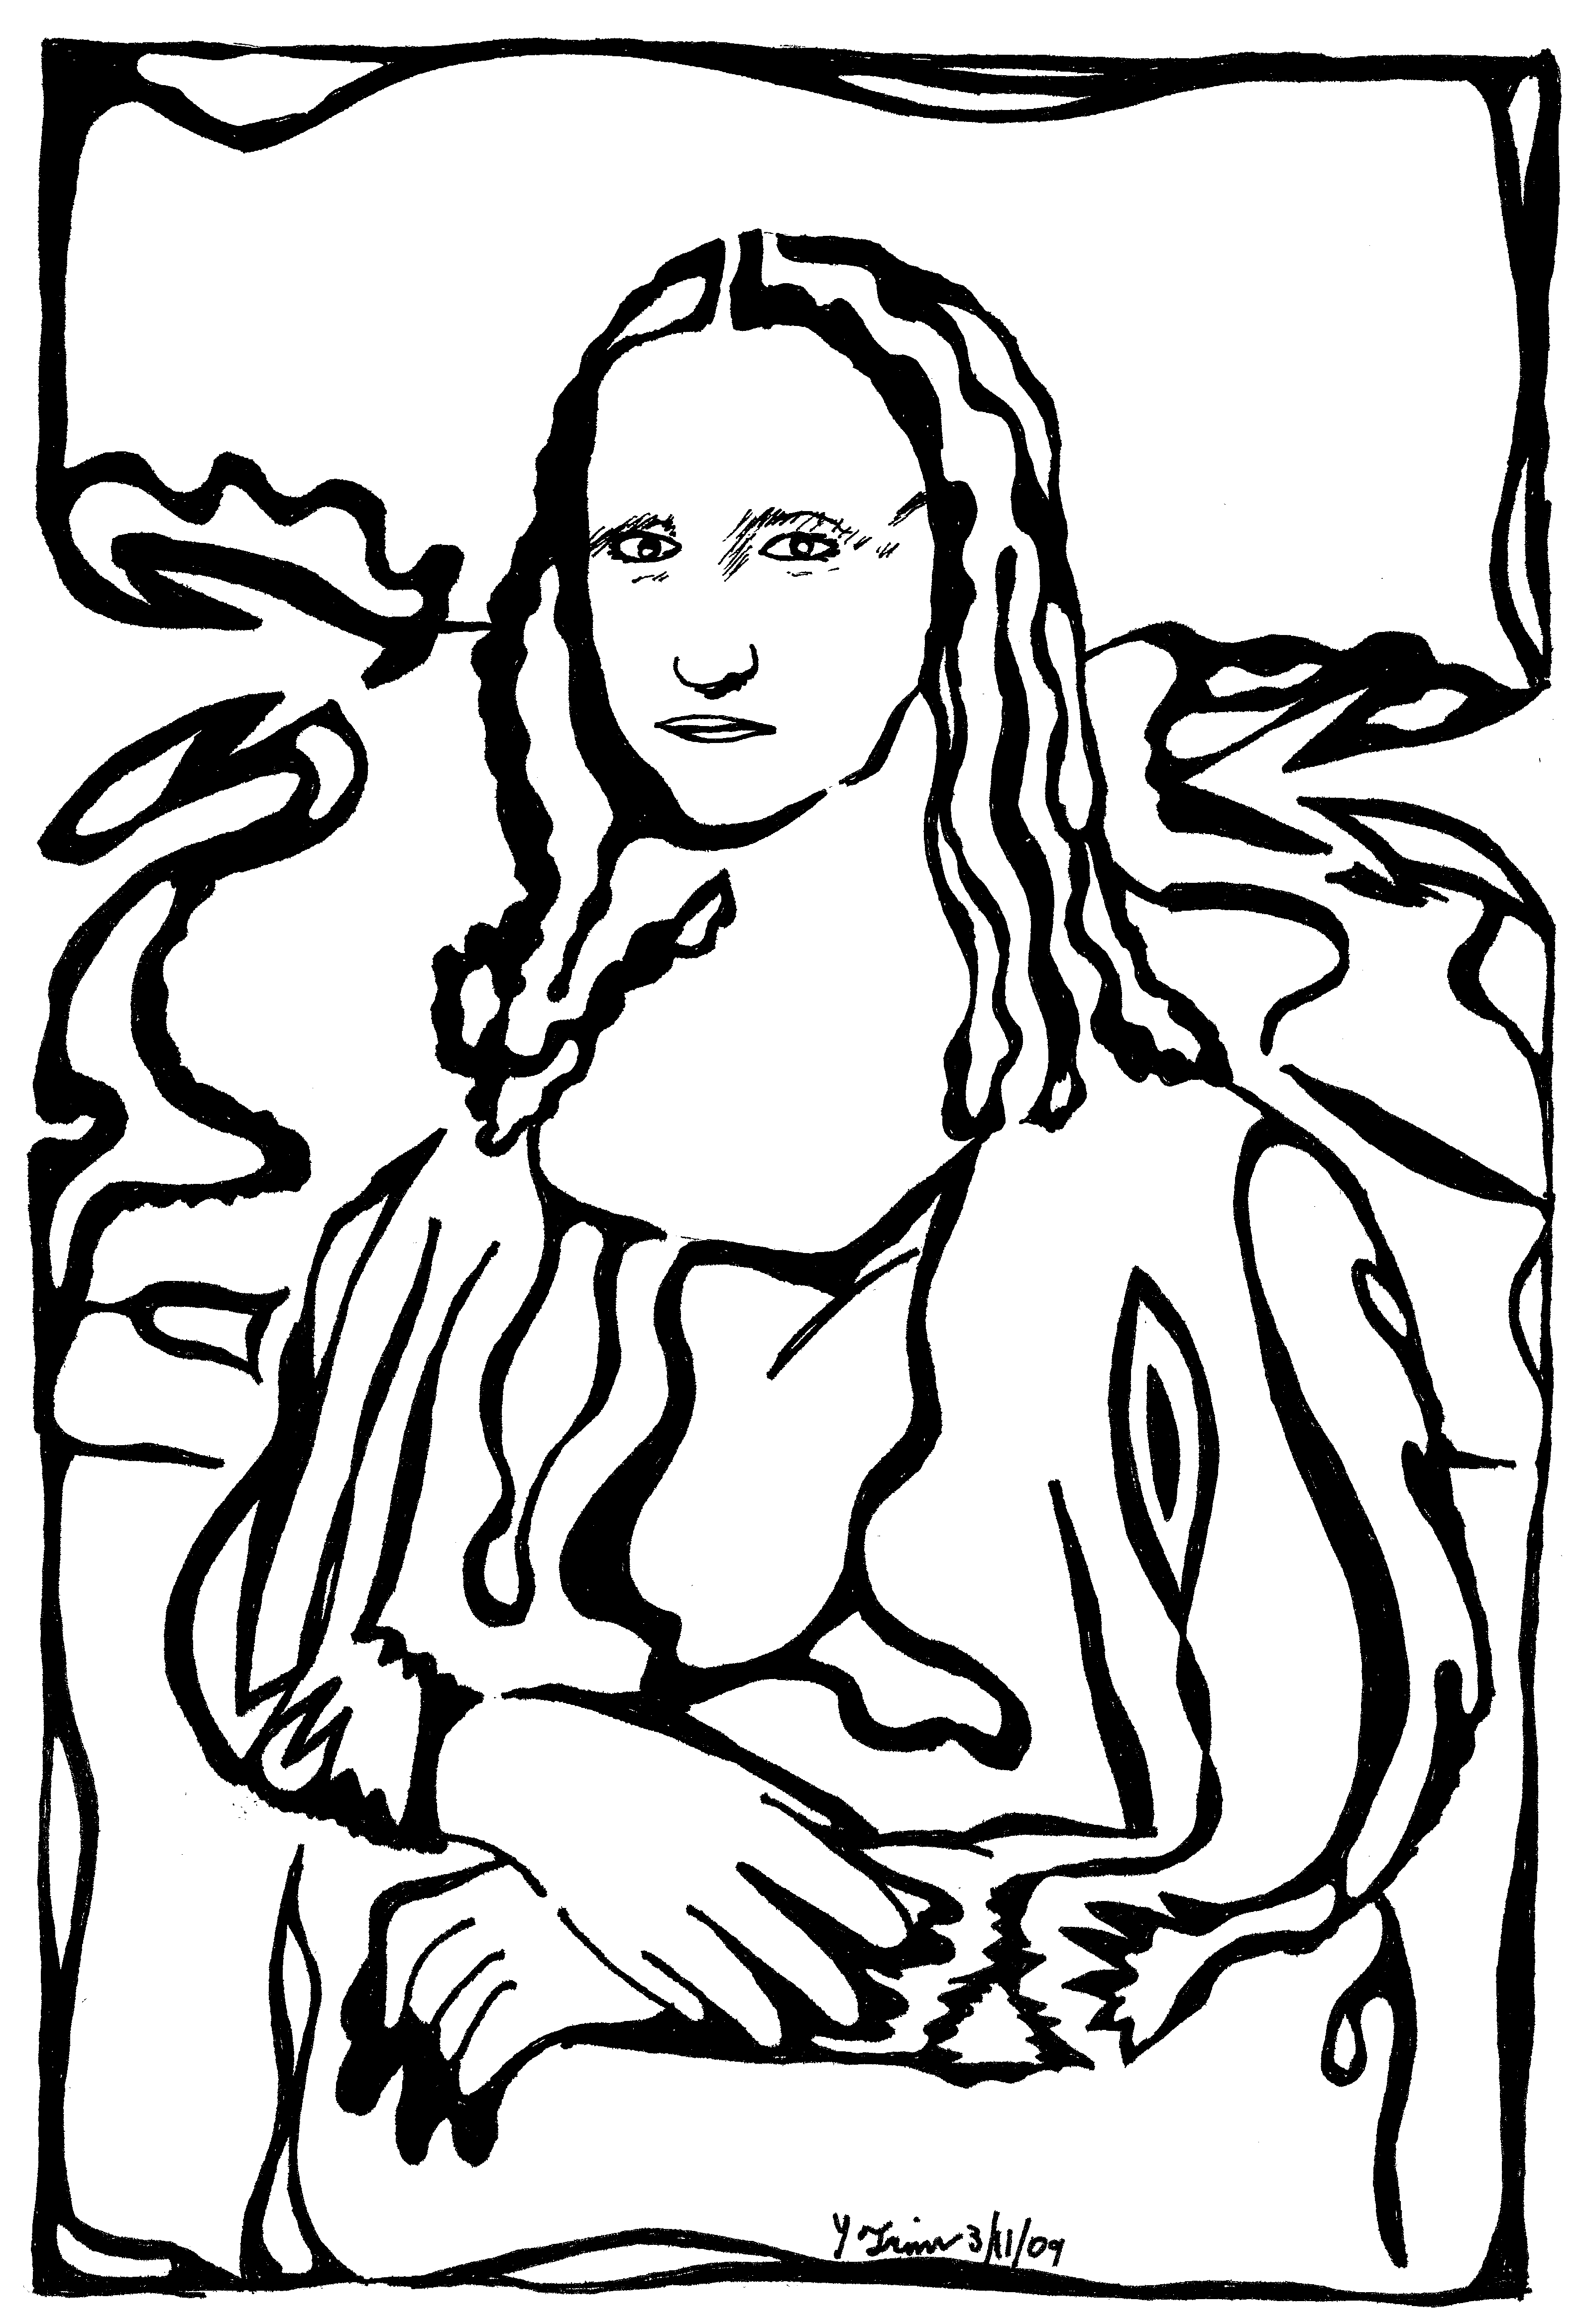 Mazes Mona Lisa Maze Artwork replica portrait